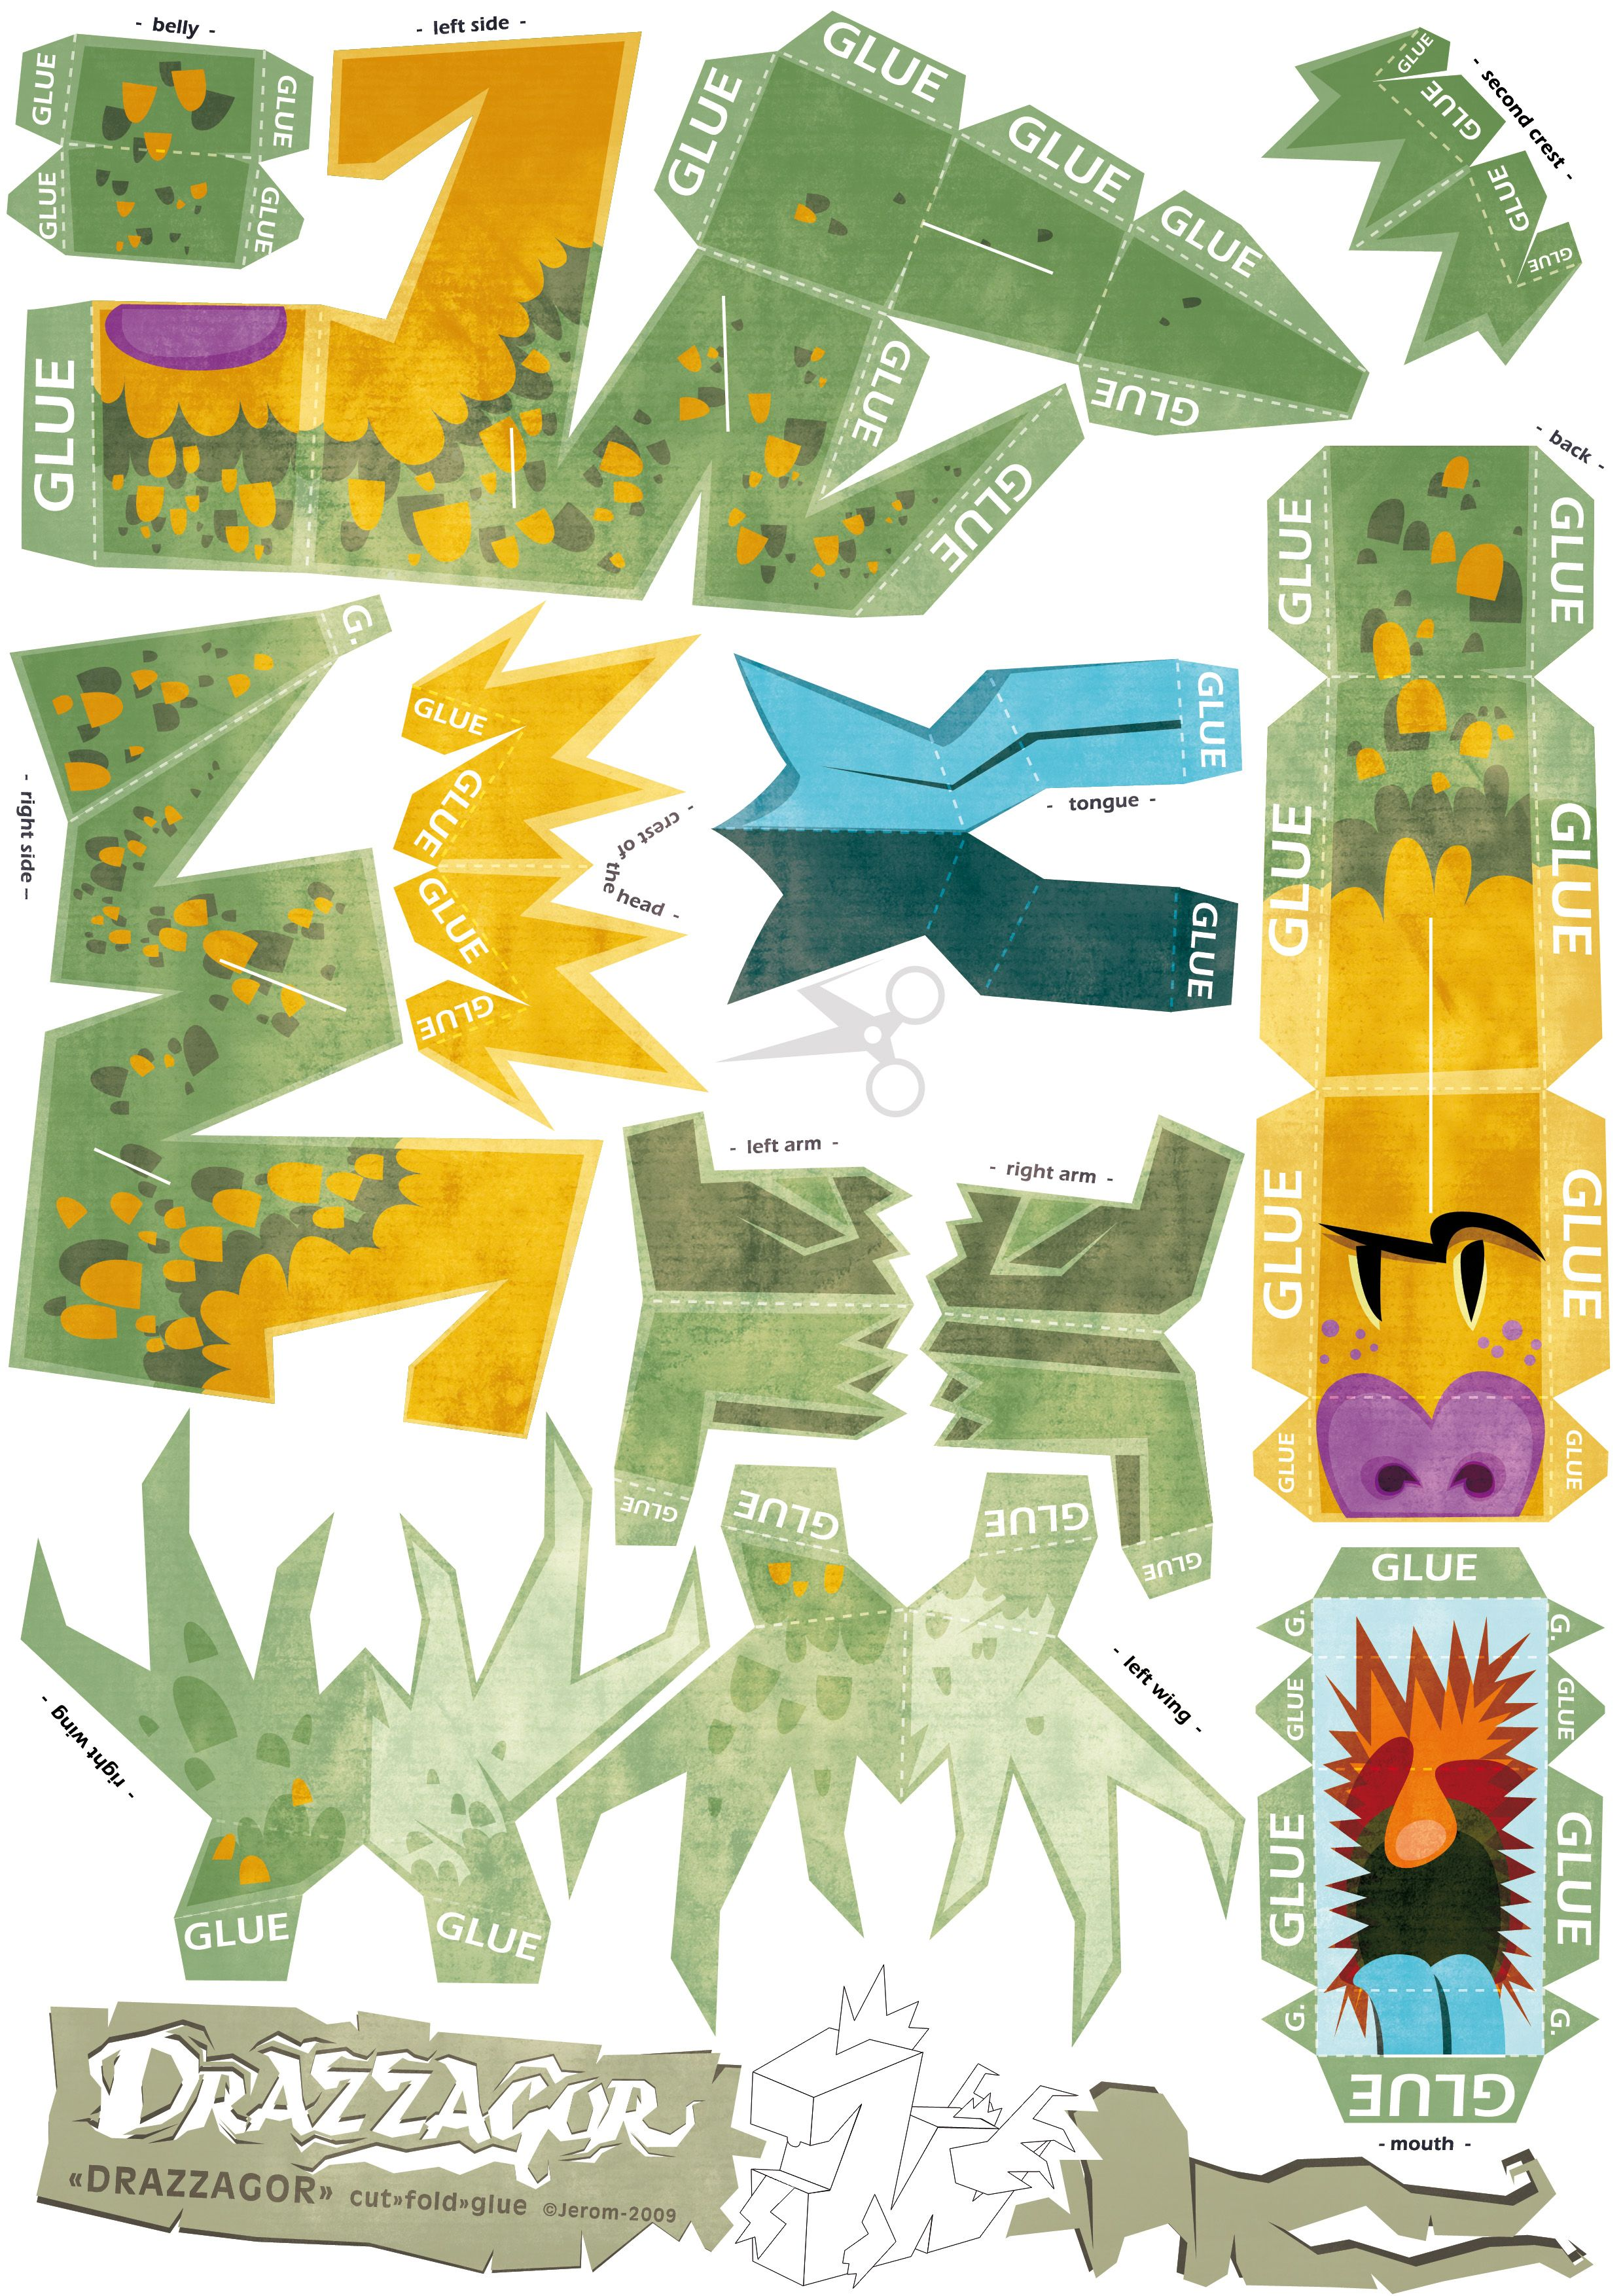 dragon paper-toy | Paper folding Dragons and dino's ... - photo#11